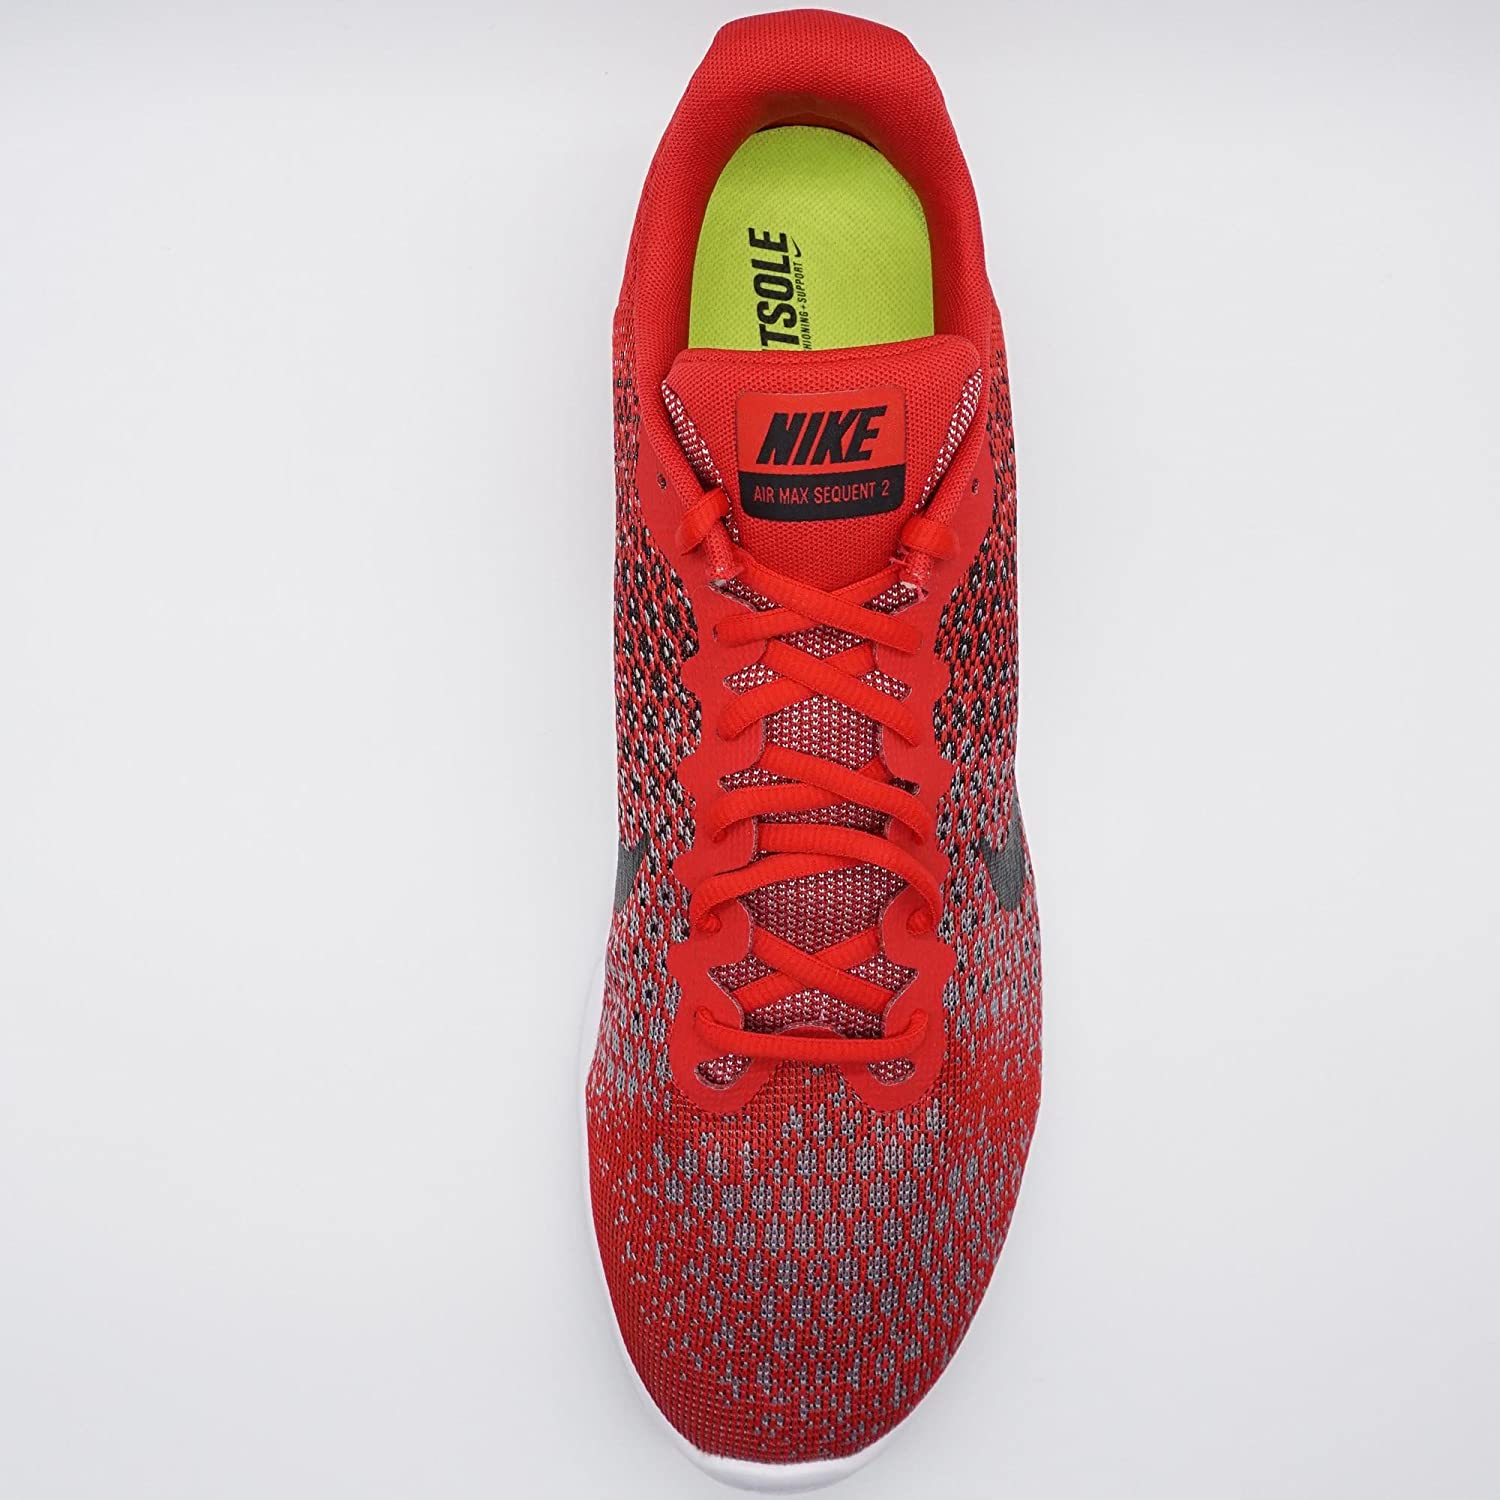 NIKE Men's Air Max Sequent 2 Running Shoe B01H2LO41K 15 D(M) US|Red/Black/Black/Cool Grey